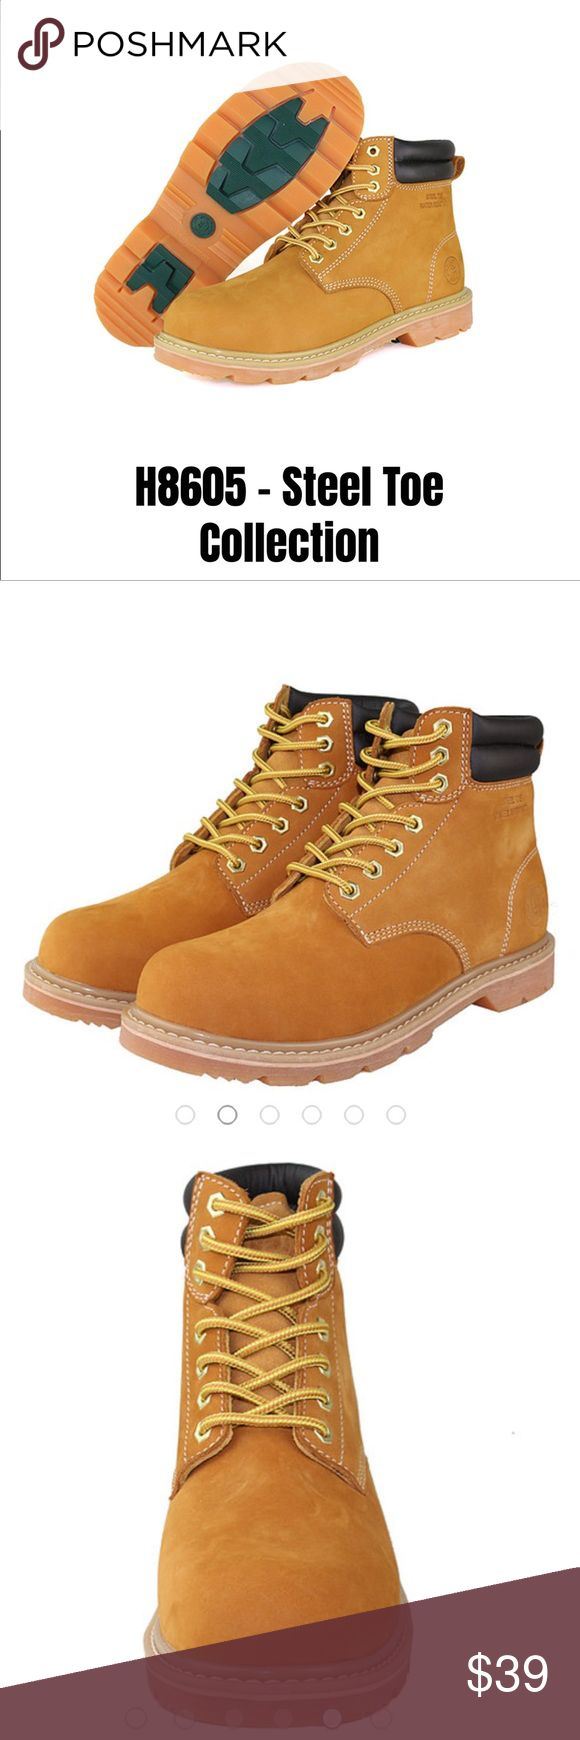 NEW MEN working Steel toe boots! Waterproof! NEW MEN collection steel toe boots! Brand:Jacata! Most sizes are available! Top quality leather! Other styles available! Waterproof! Steel Toe Working boots! Made in China! Shoes Boots